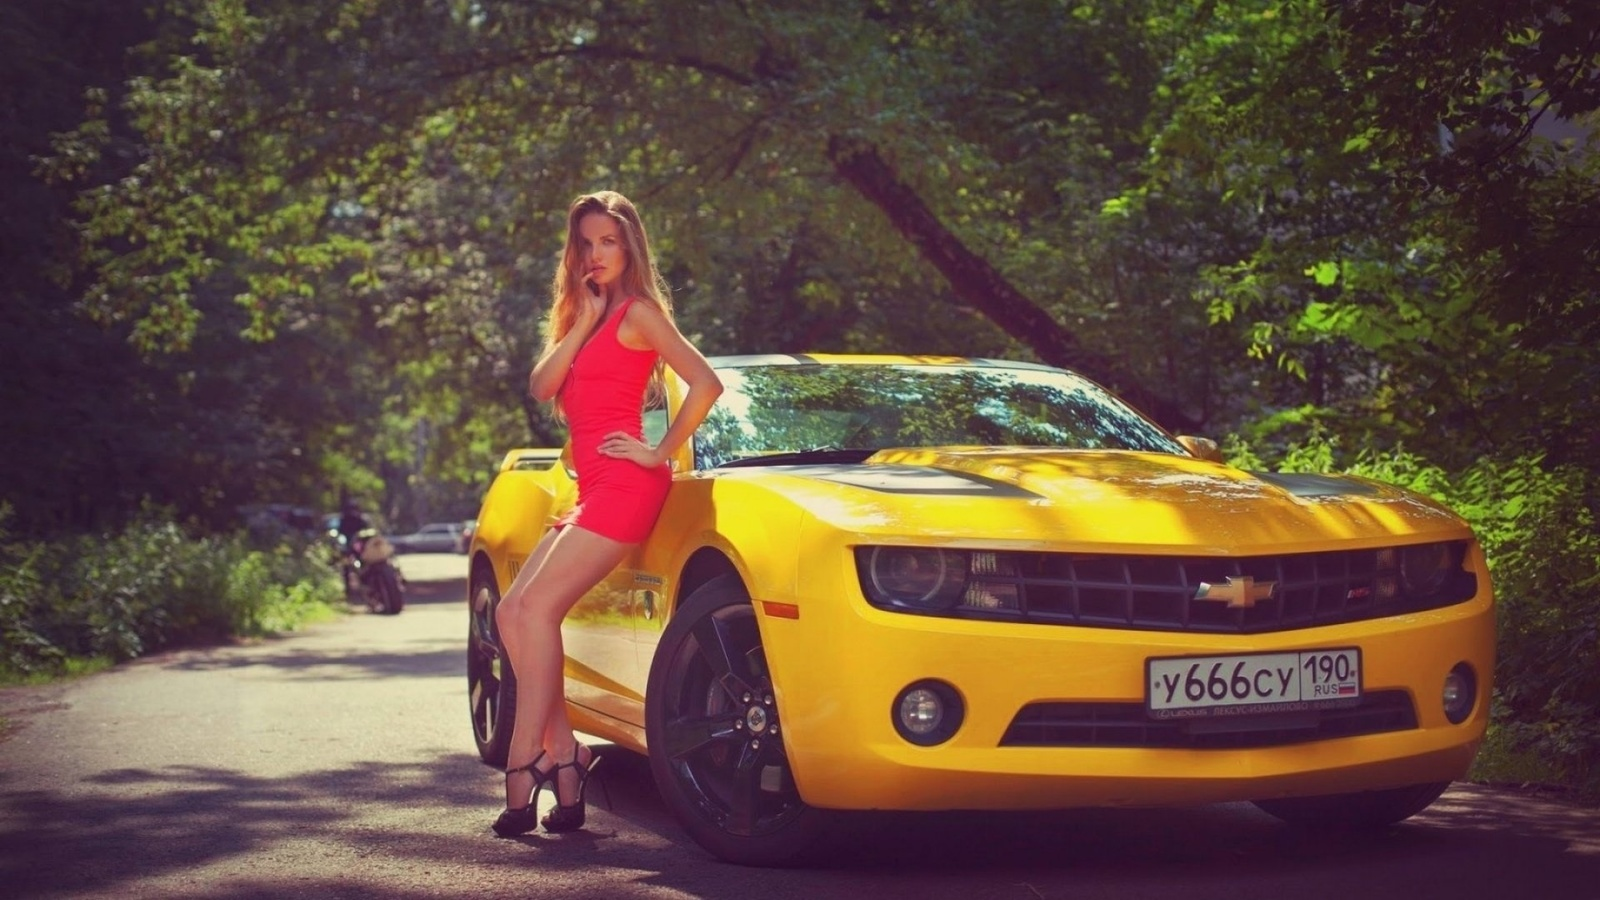 car, dress, girl, road